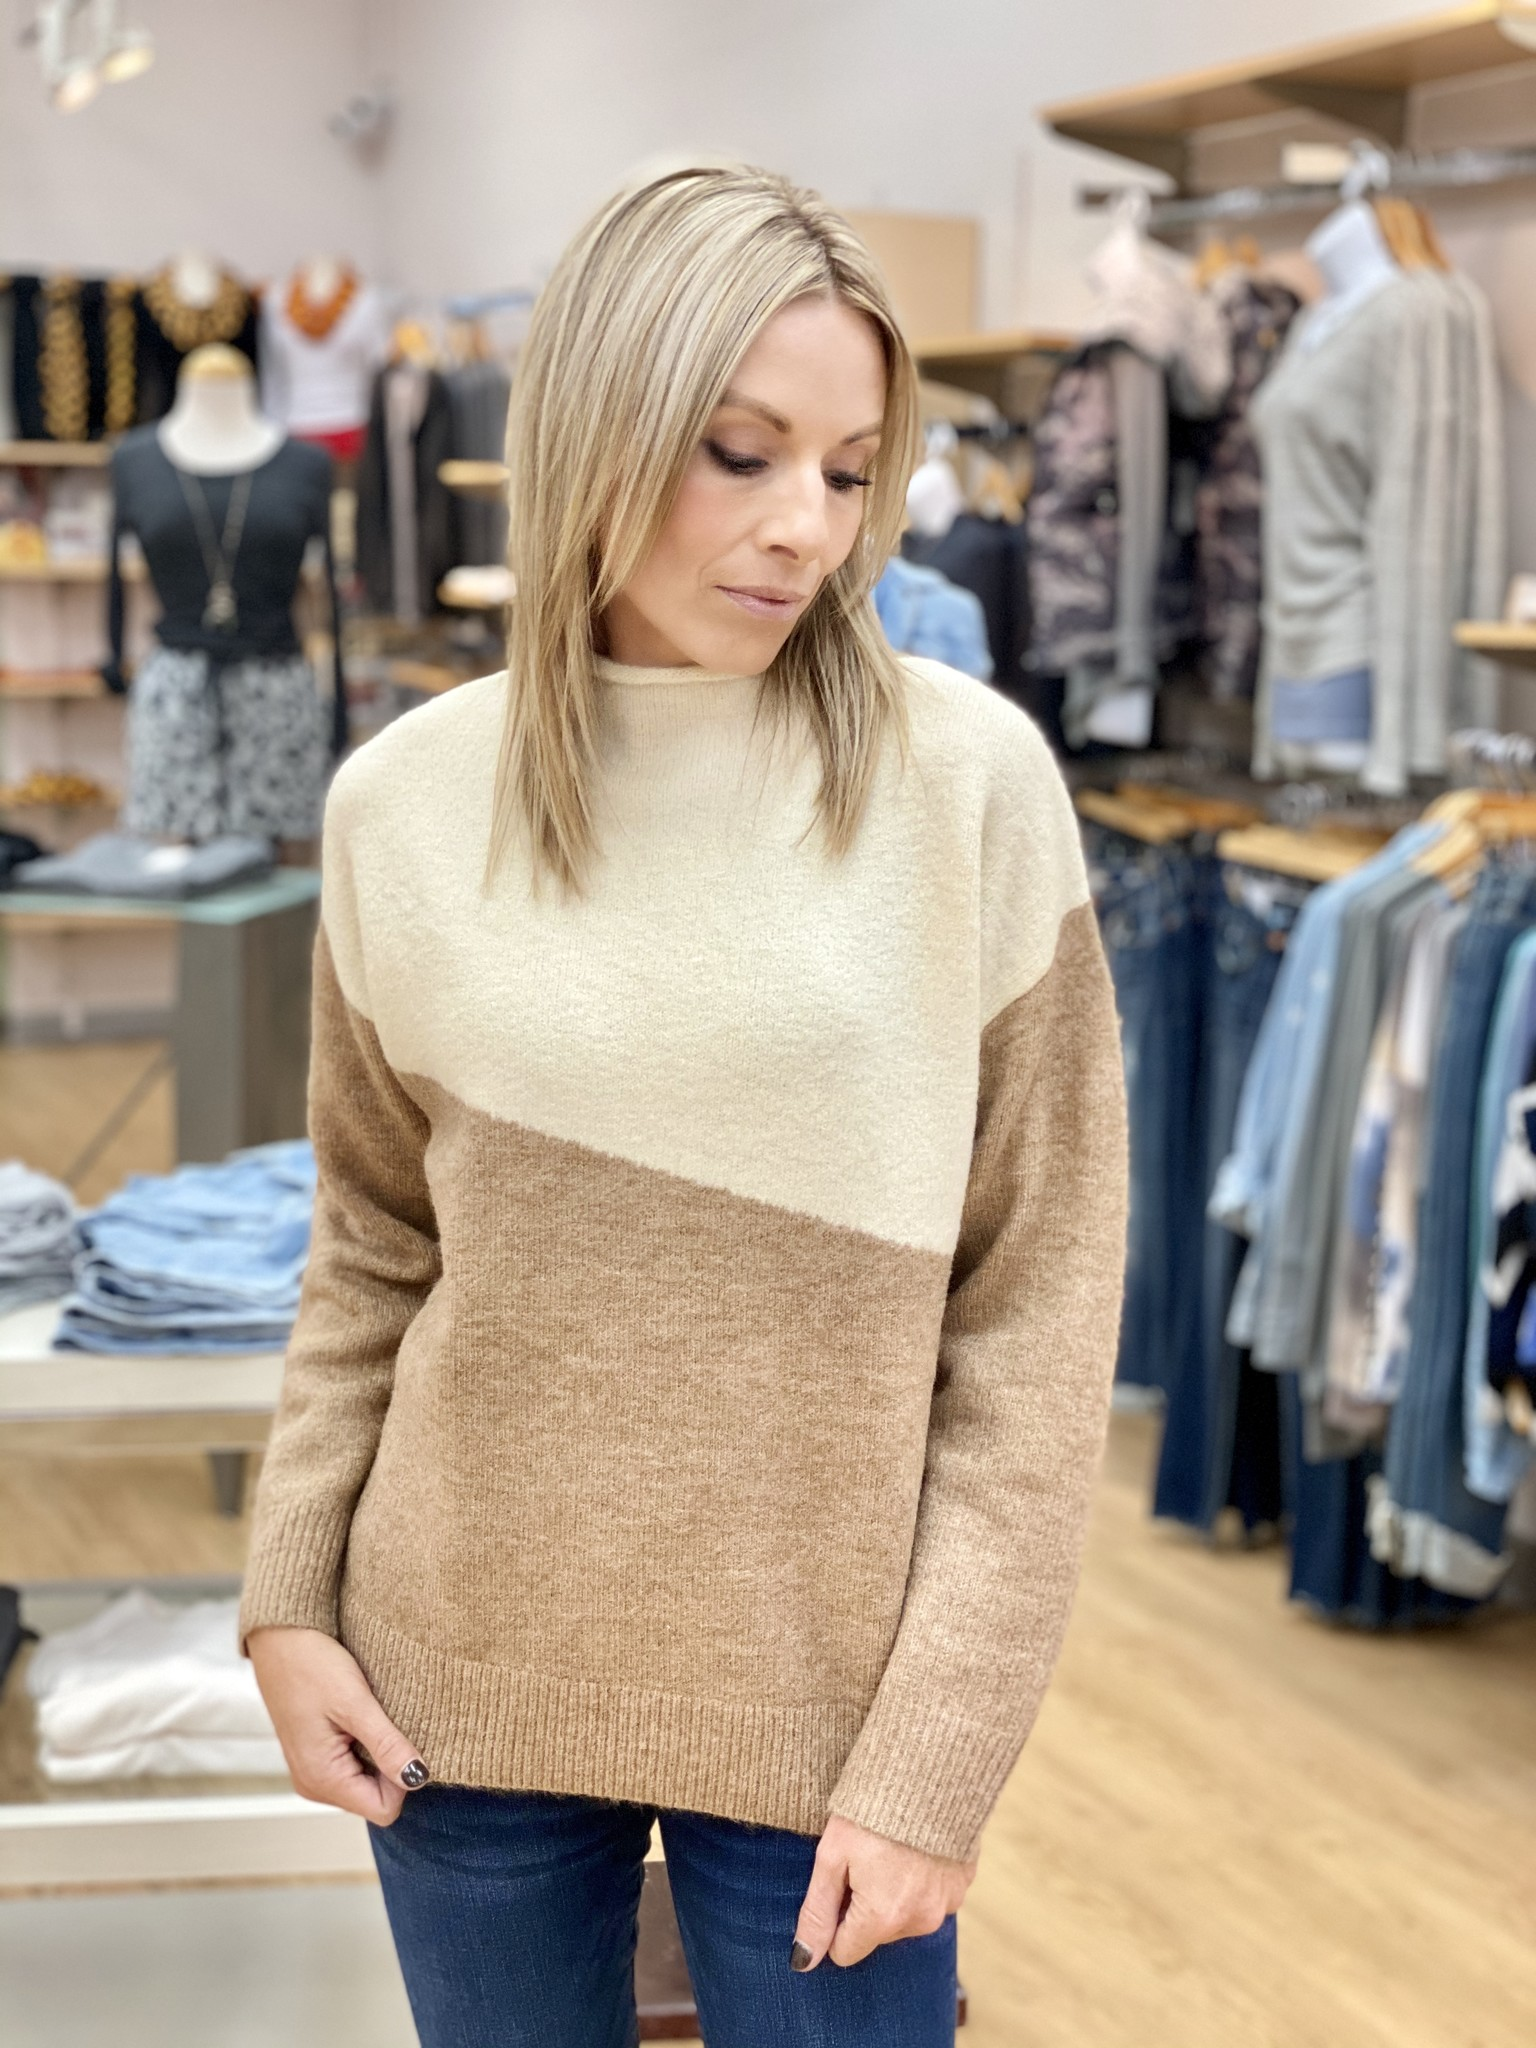 Kerisma Colorblock Sweater in Camel/Ecru